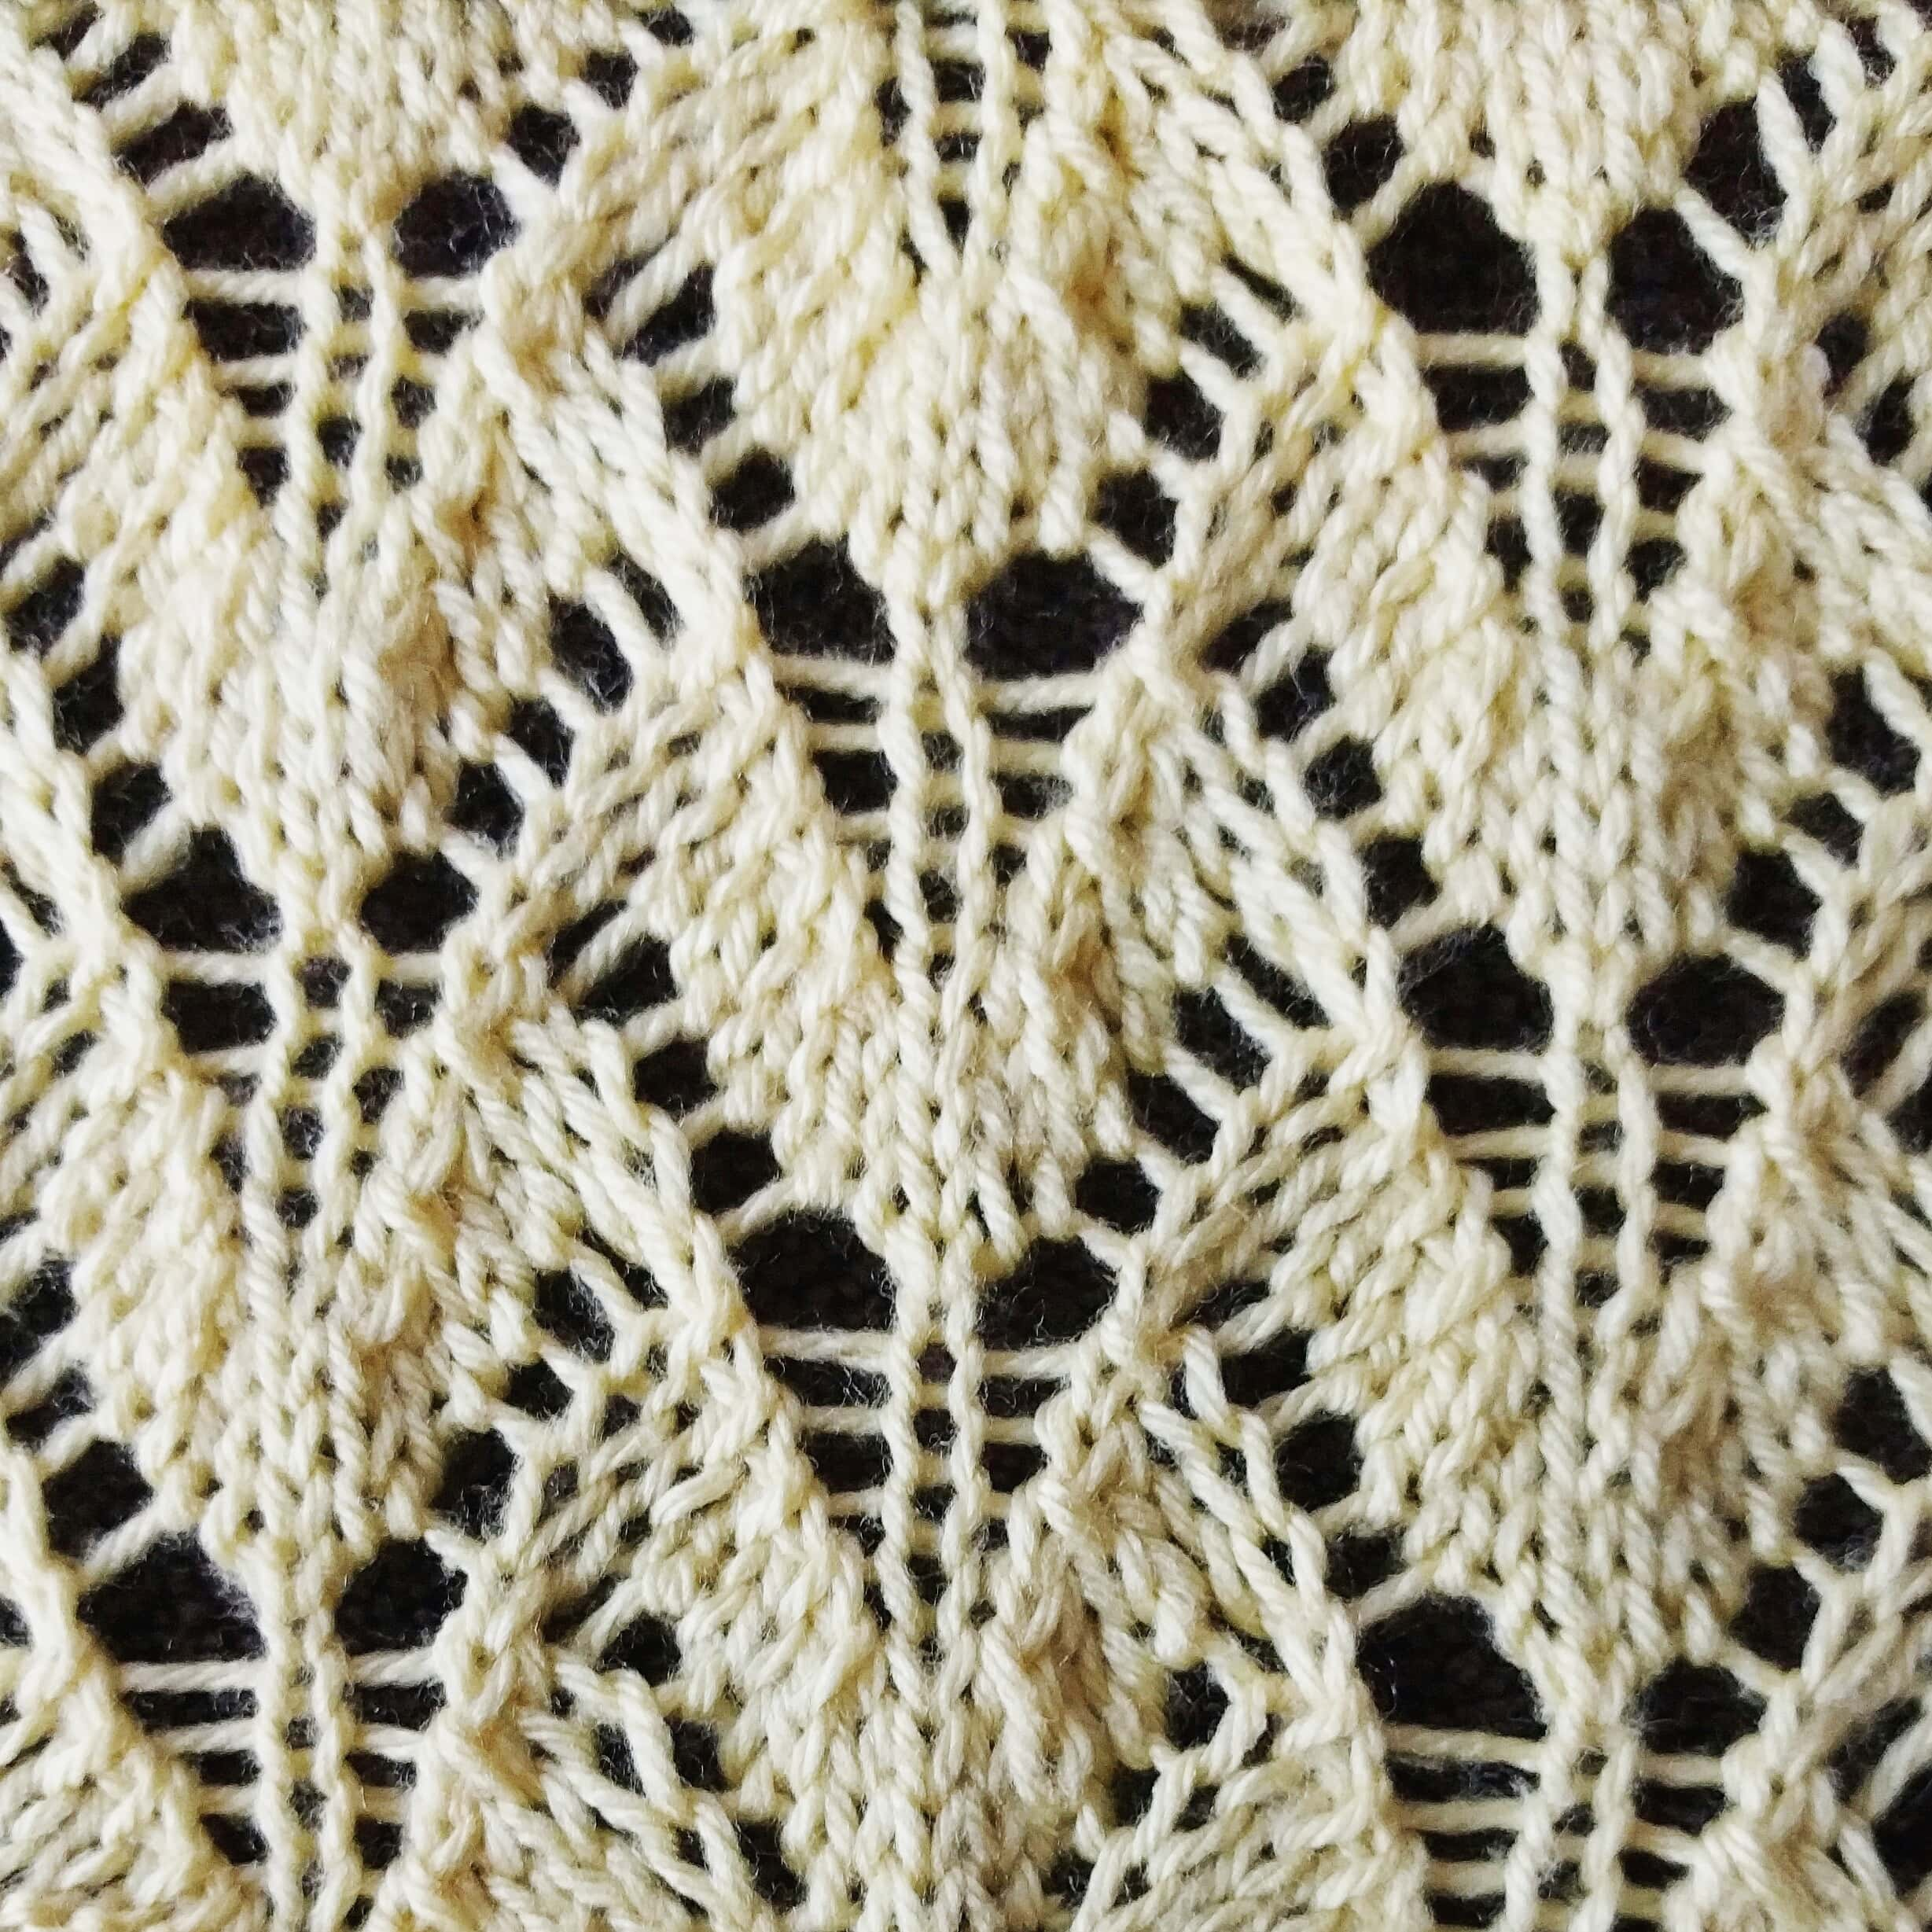 Lace Knitting Stitches Easy : lace stitch Archives - Purl Avenue